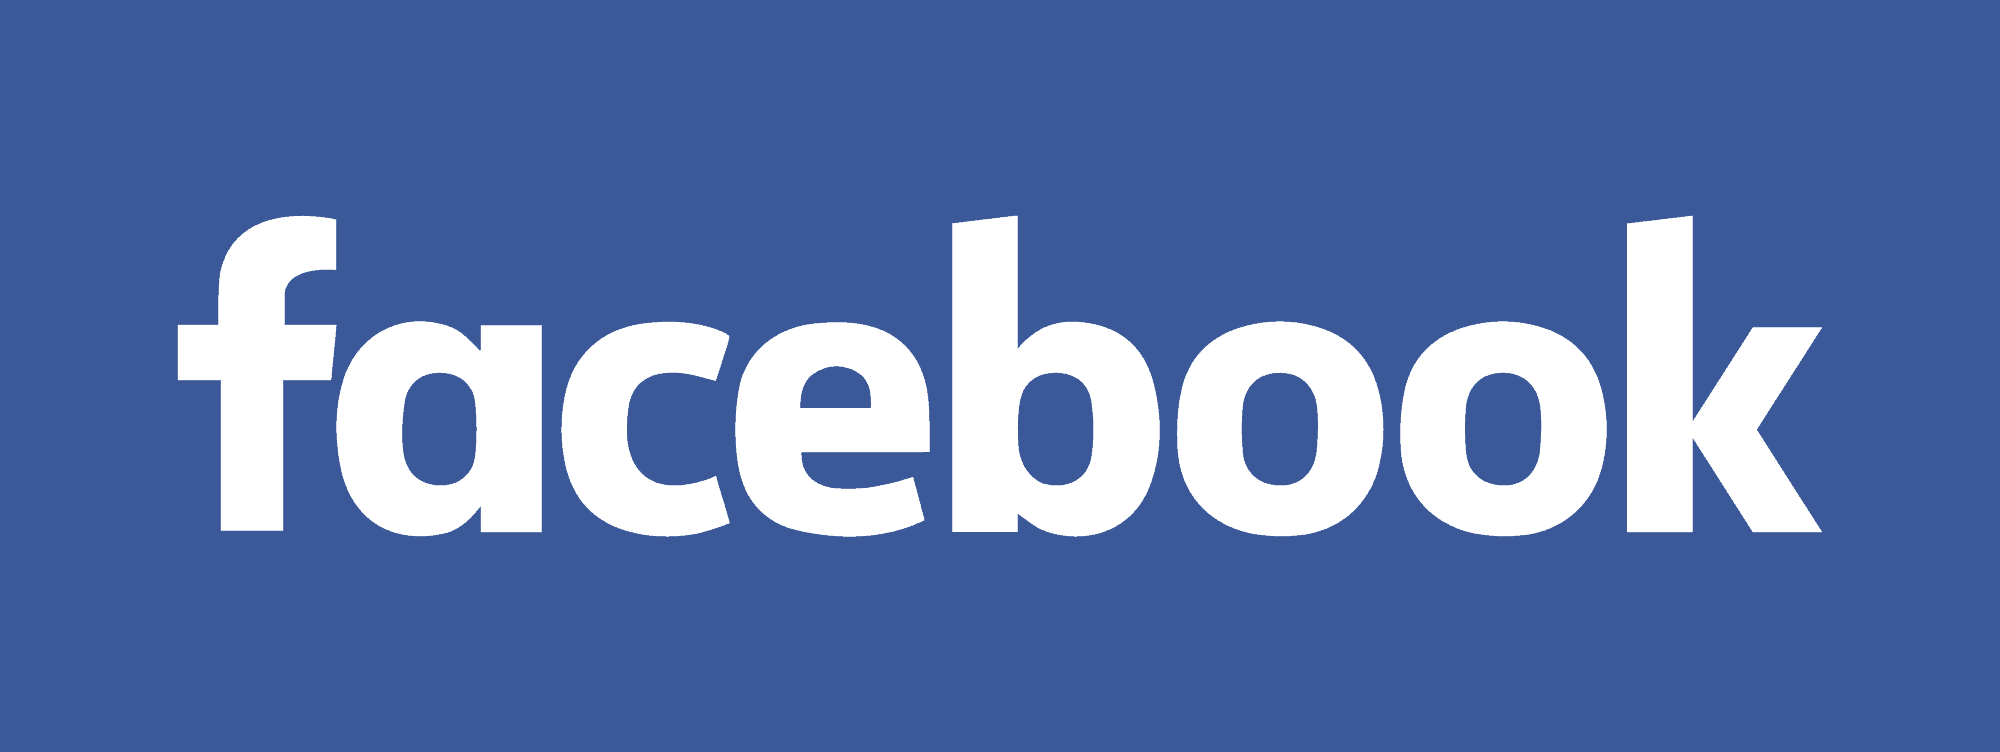 https://upload.wikimedia.org/wikipedia/commons/thumb/7/7c/Facebook_New_Logo_%282015%29.svg/2000px-Facebook_New_Logo_%282015%29.svg.png